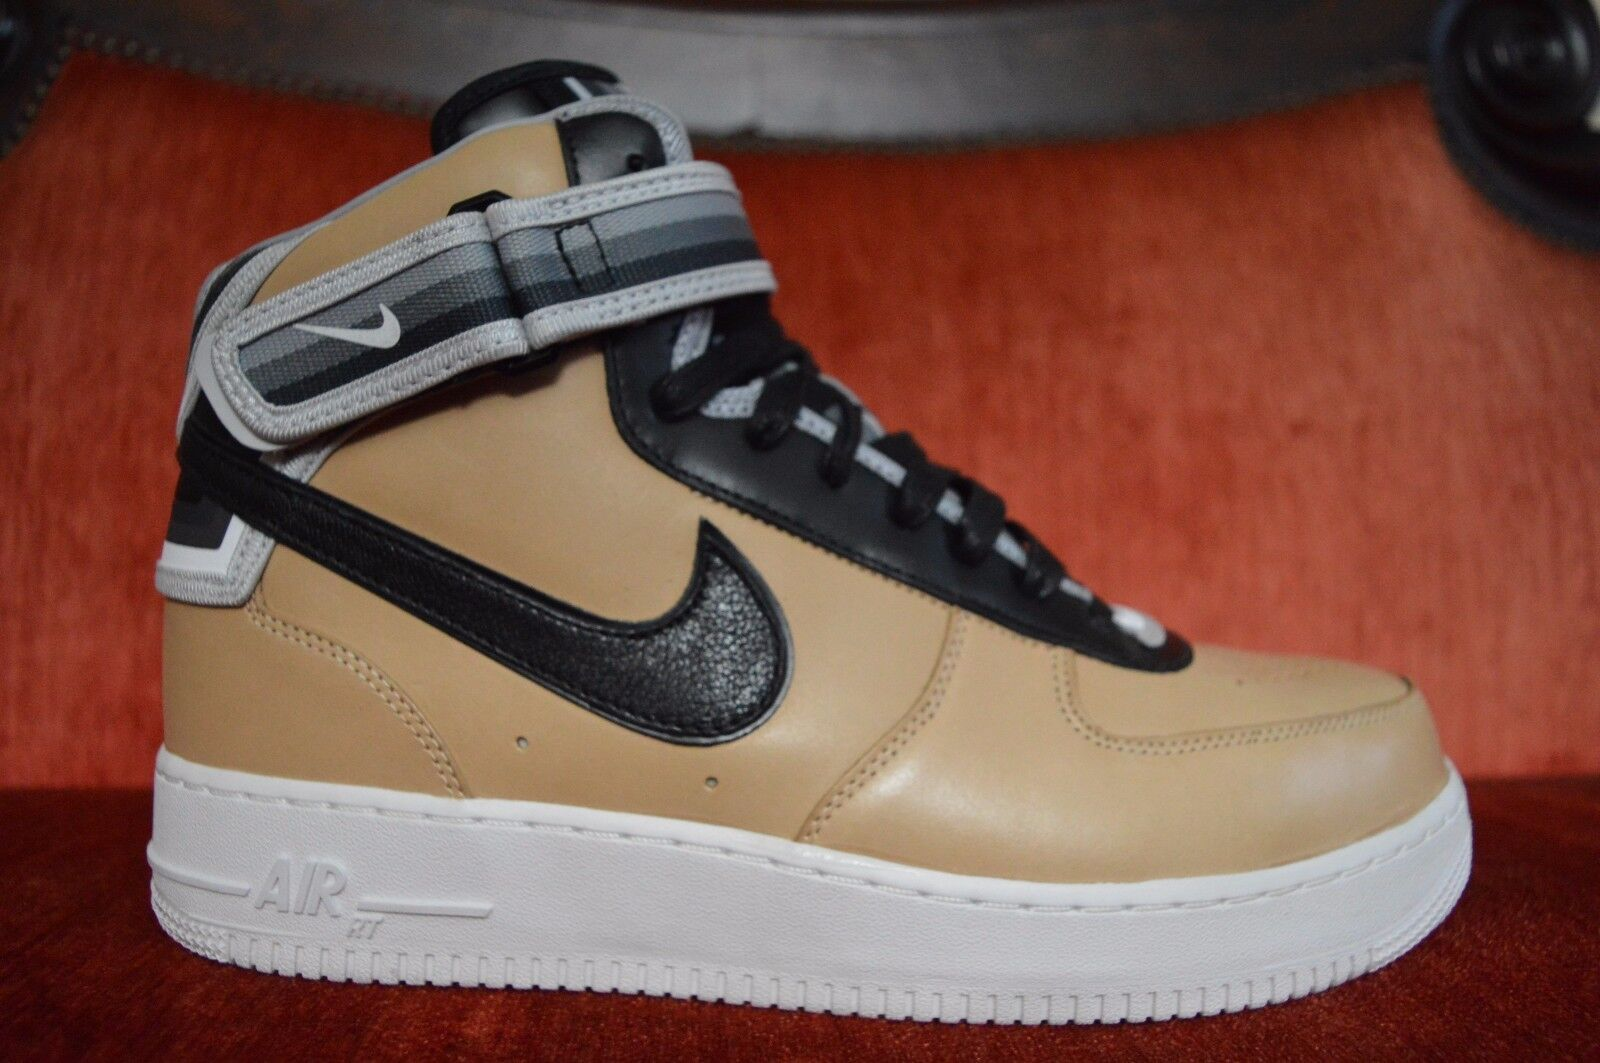 Nike Air Force 1 RT Riccardo Tisci Givenchy AF1 Mid Tan 677130 200 Size 11.5